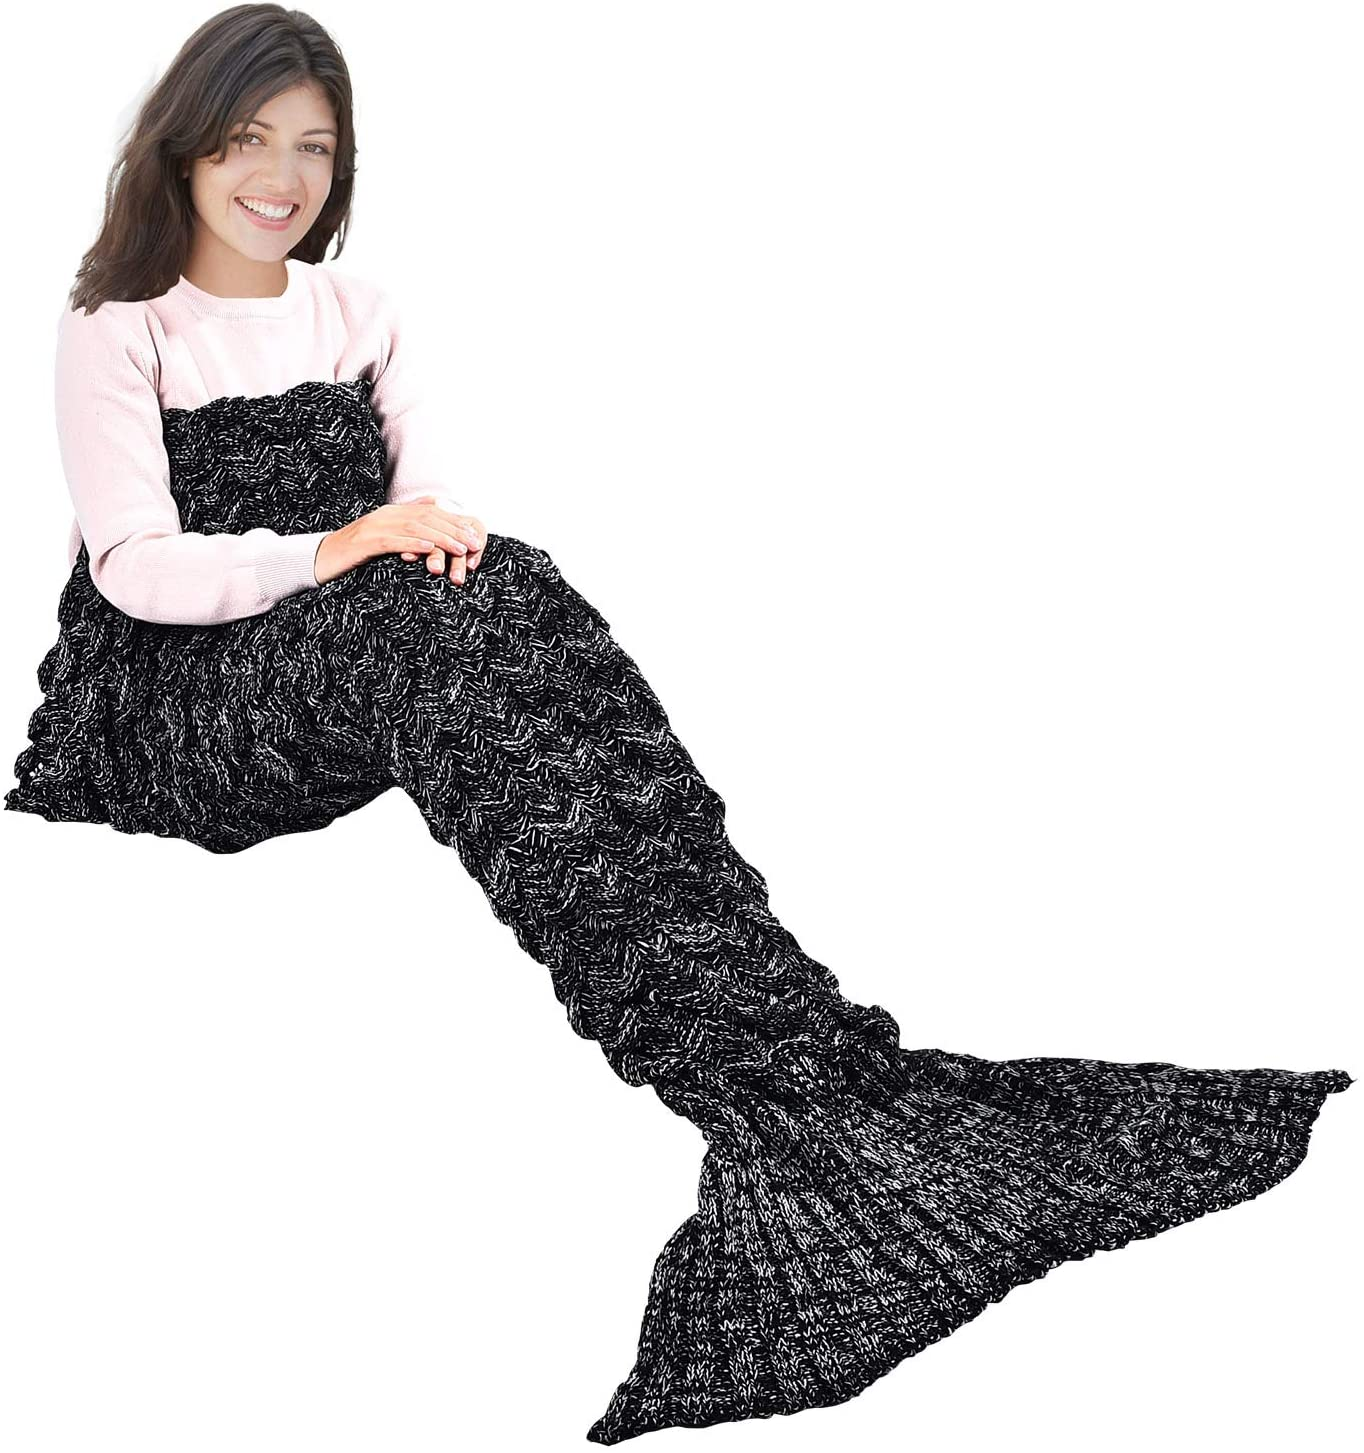 Adult Kid Fish Mermaid Scale Crocheted Soft Sofa Blanket Knit Girls Warm Gifts